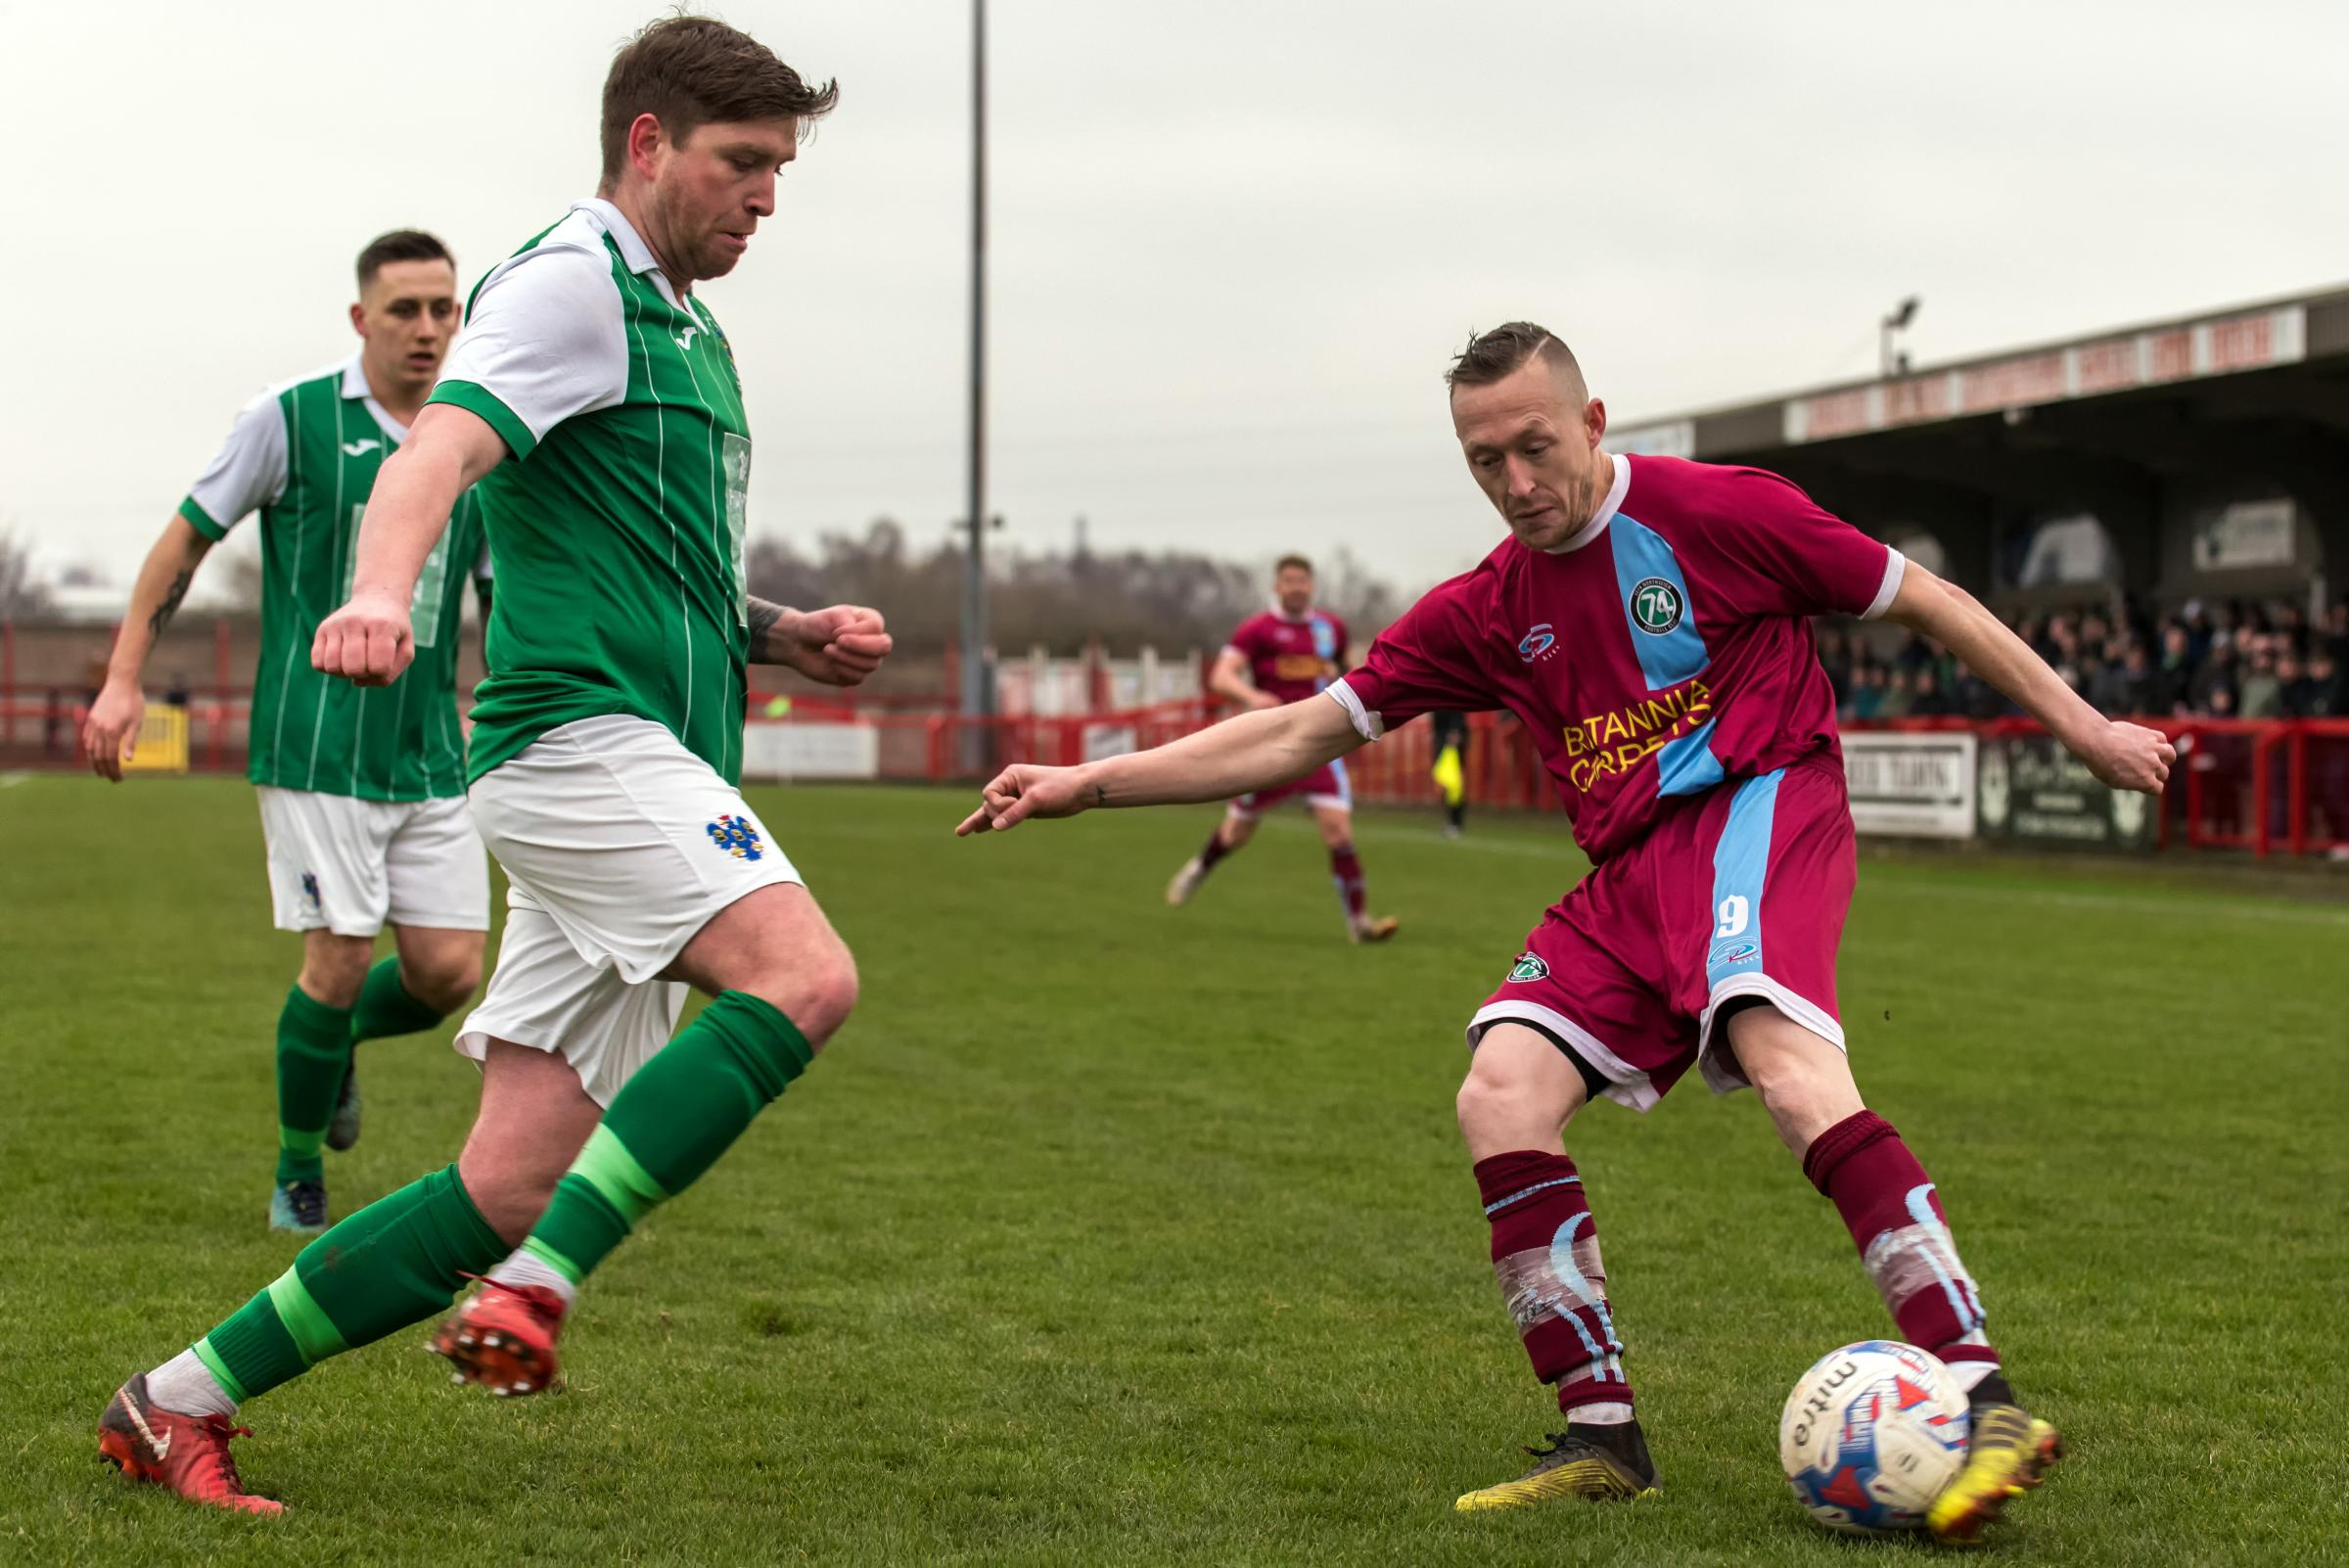 1874 Northwich front man Scott McGowan, right, is closed down by Northwich Victoria defender Andy Fitzgerald during Saturday's North West Counties League fixture at Wincham Park. Picture: Ian Dutton